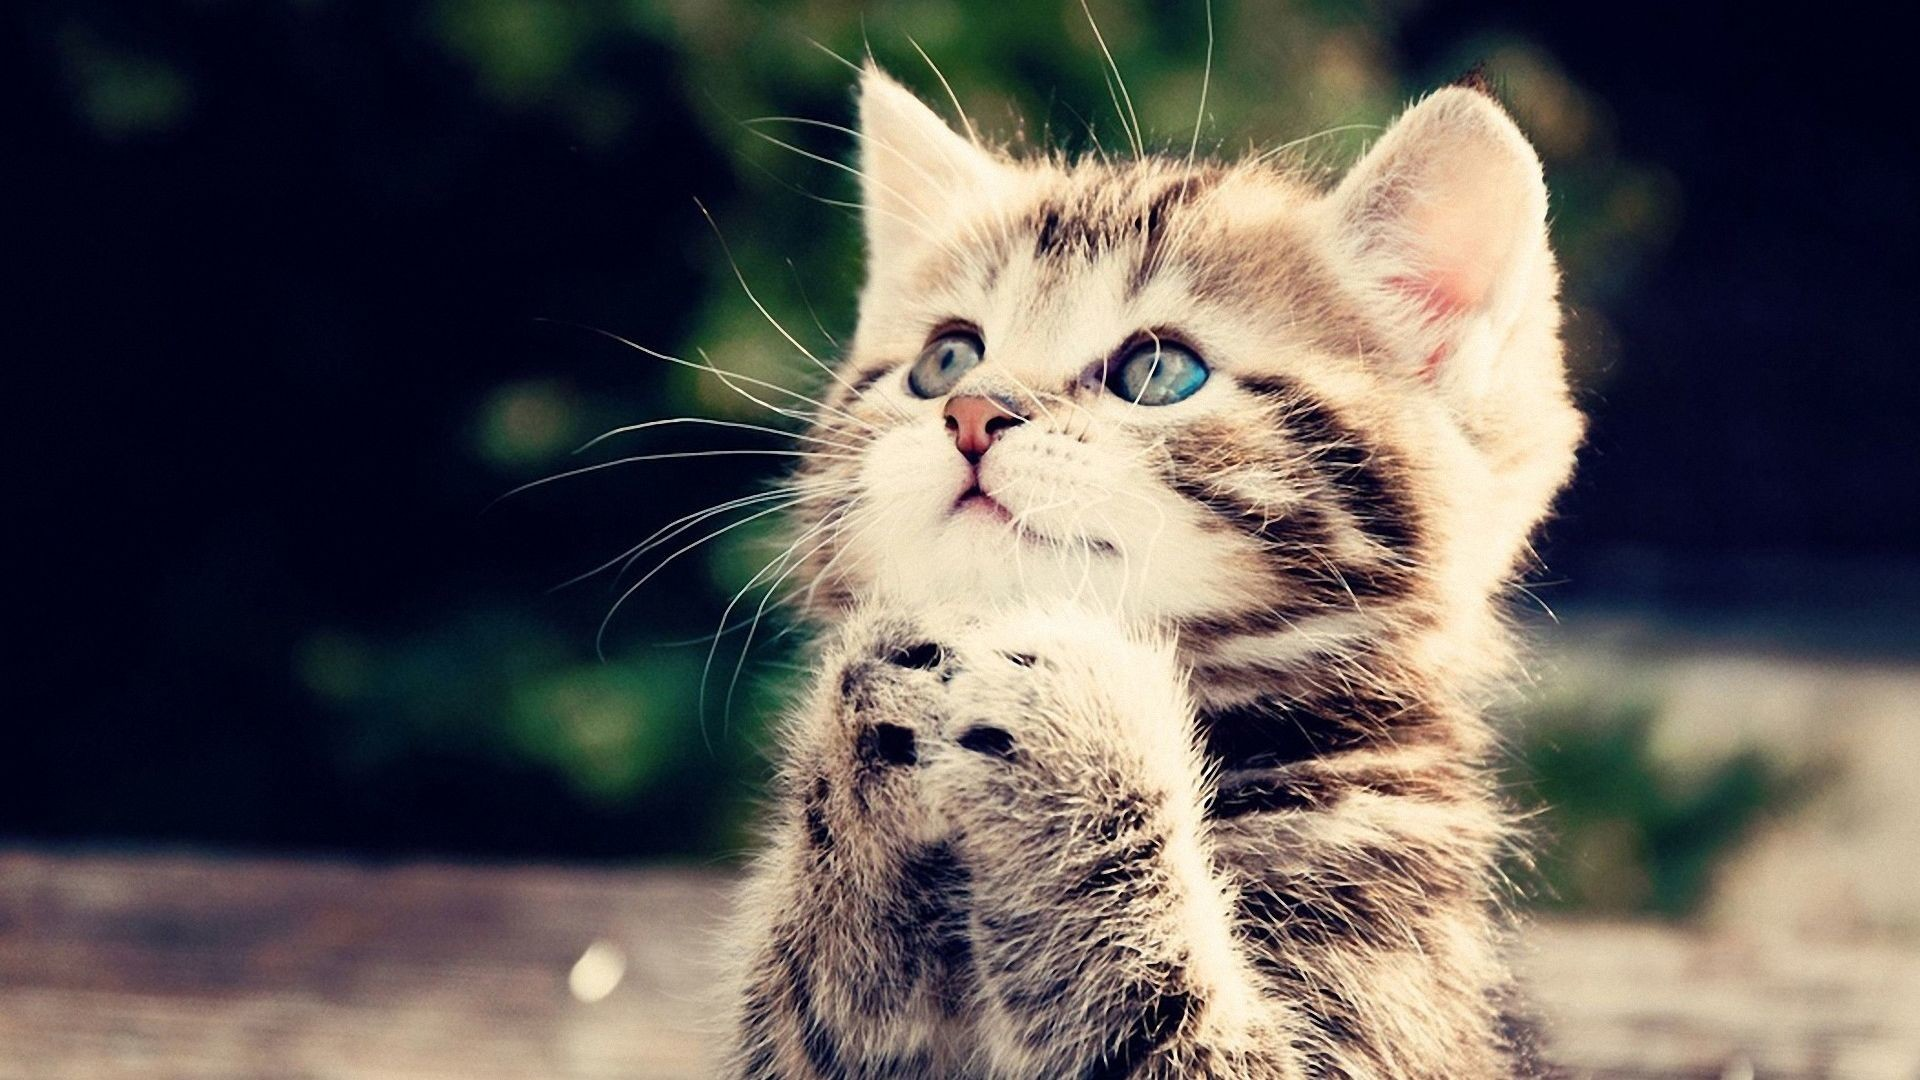 Res: 1920x1080, Black and White Cute Cat Wallpaper